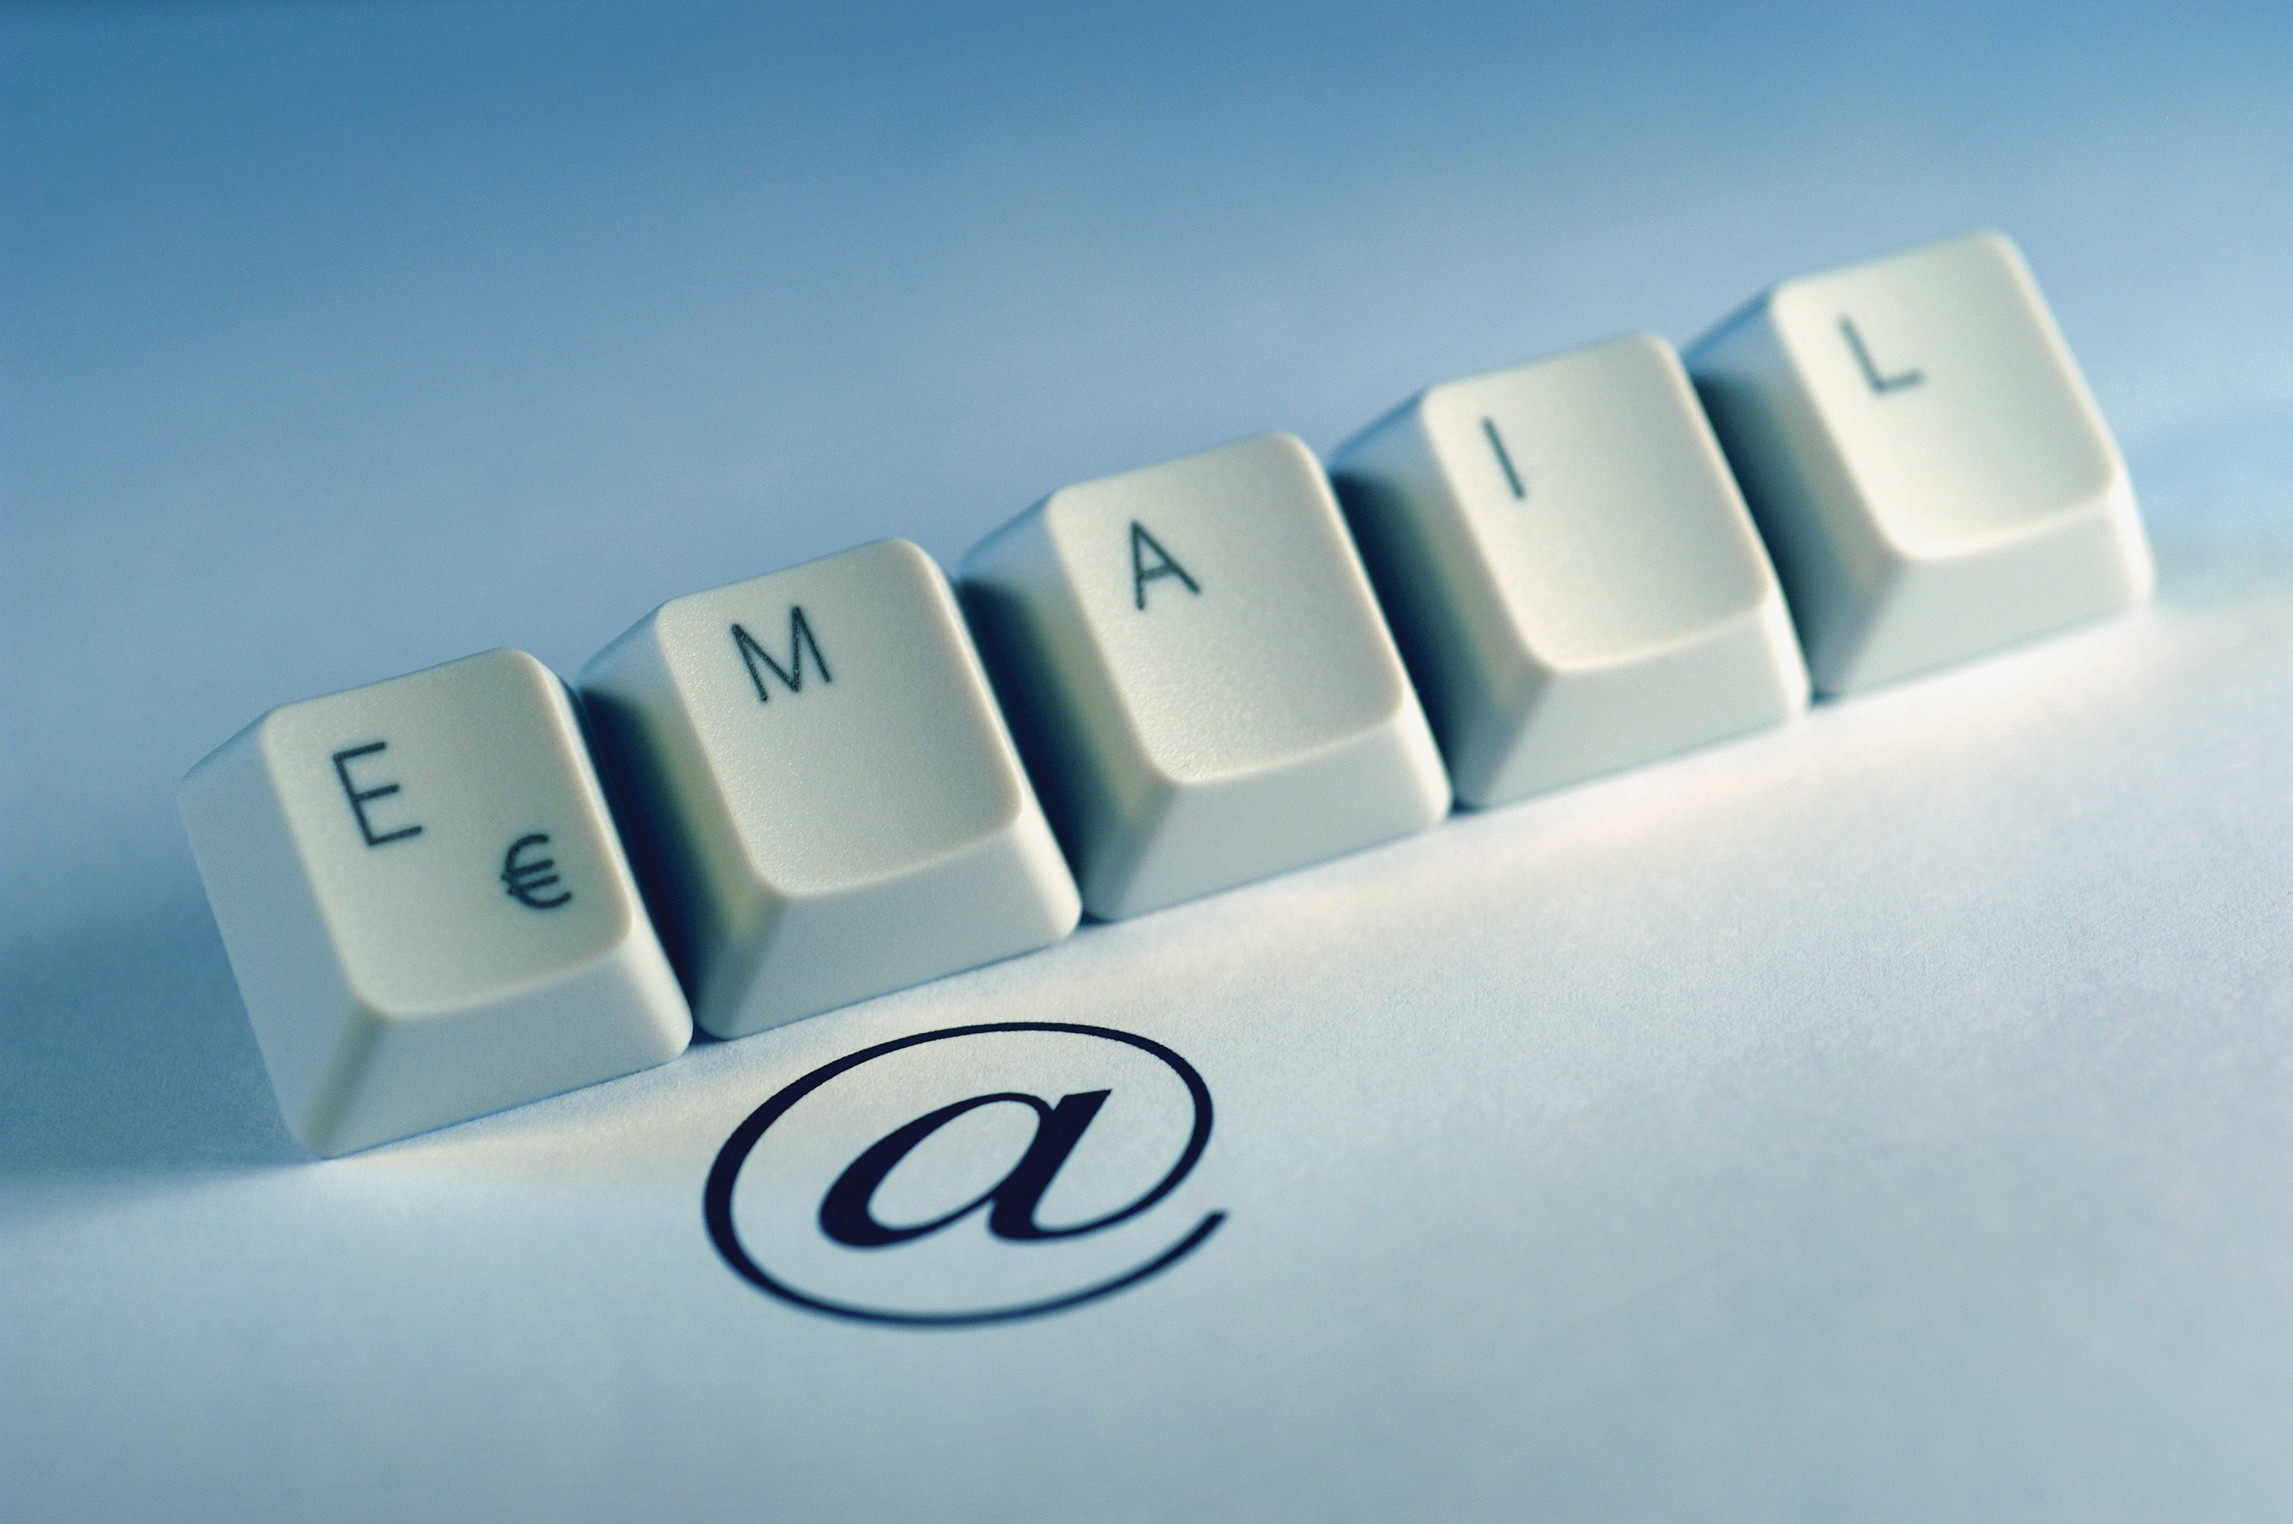 The Dos and Don'ts of E-mail Etiquette | Central Insurance